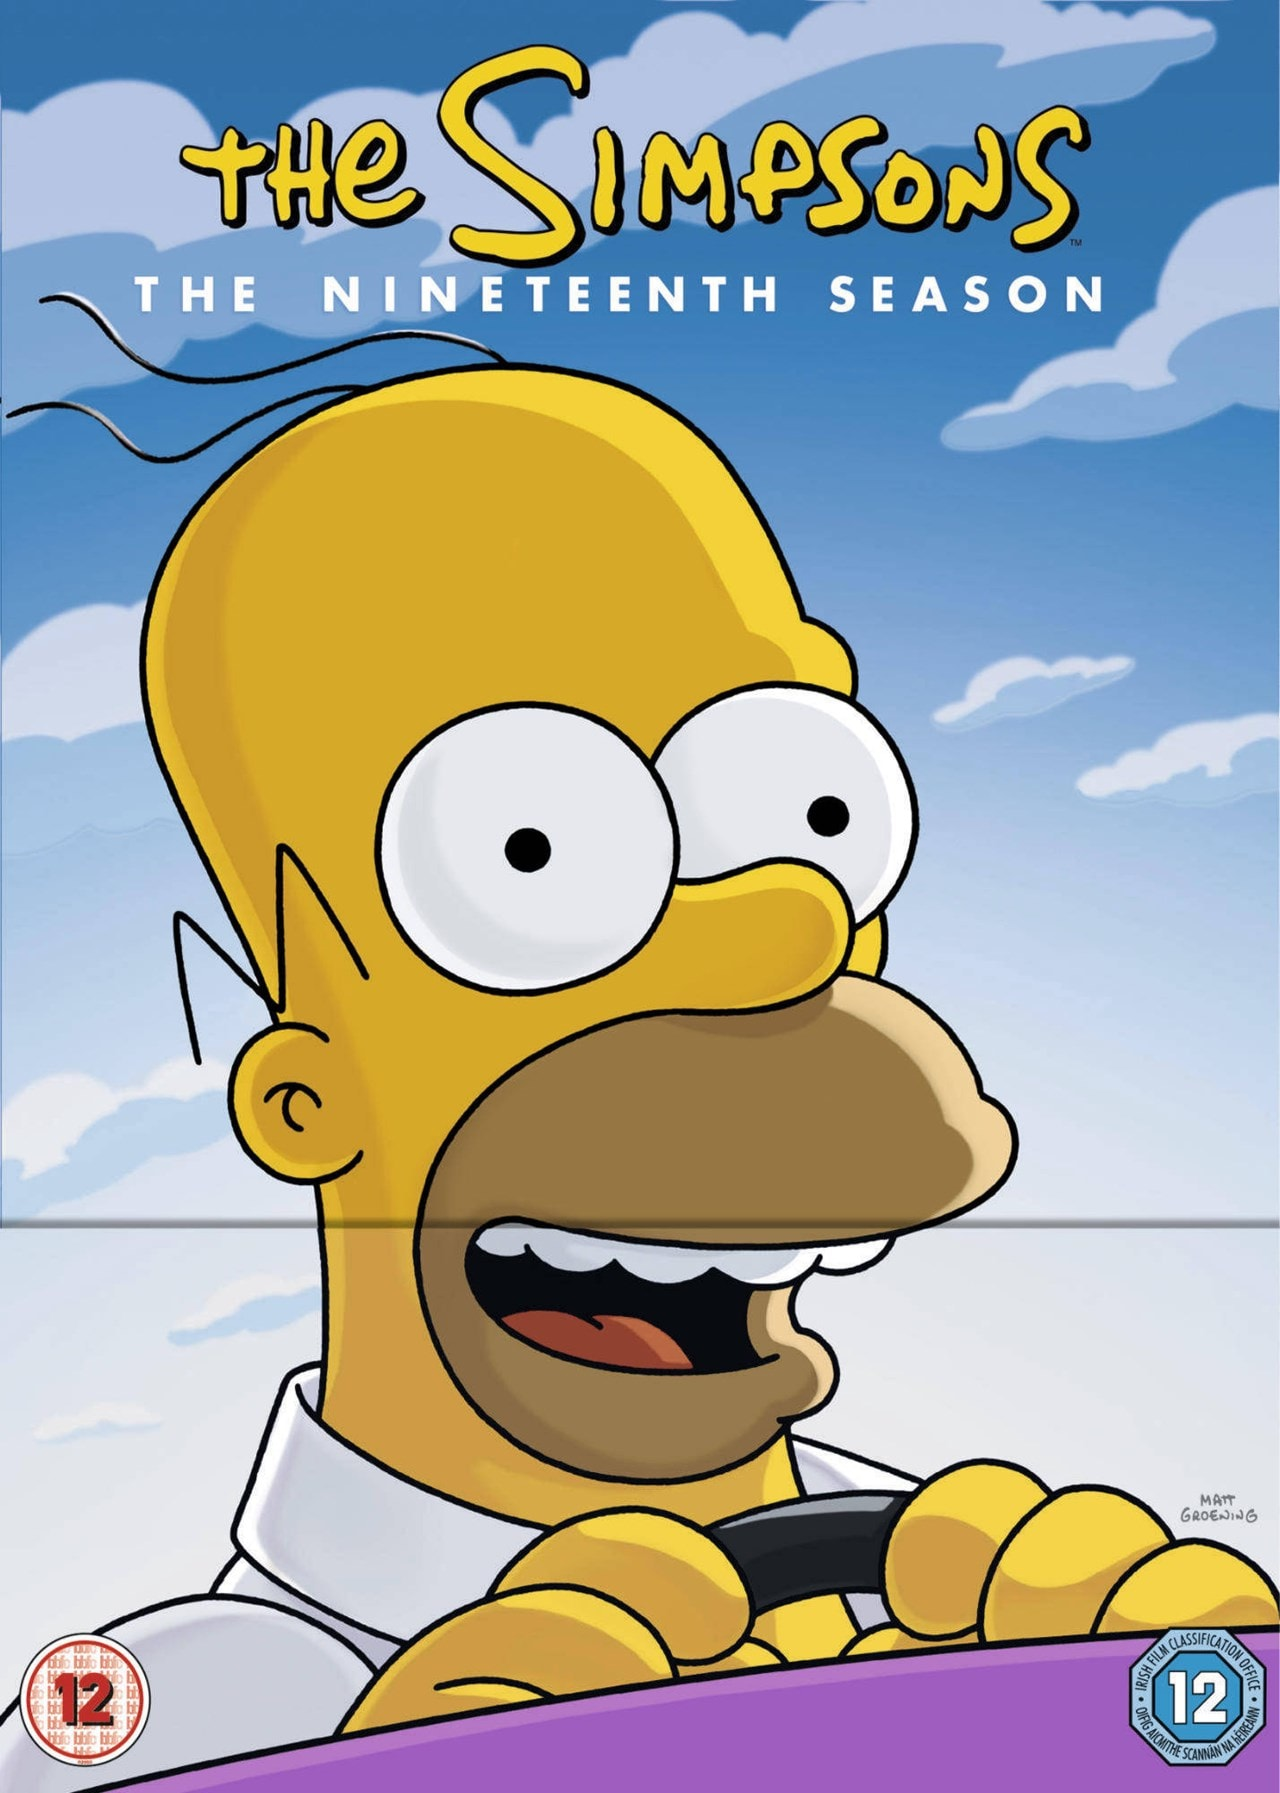 The Simpsons: The Nineteenth Season - 1